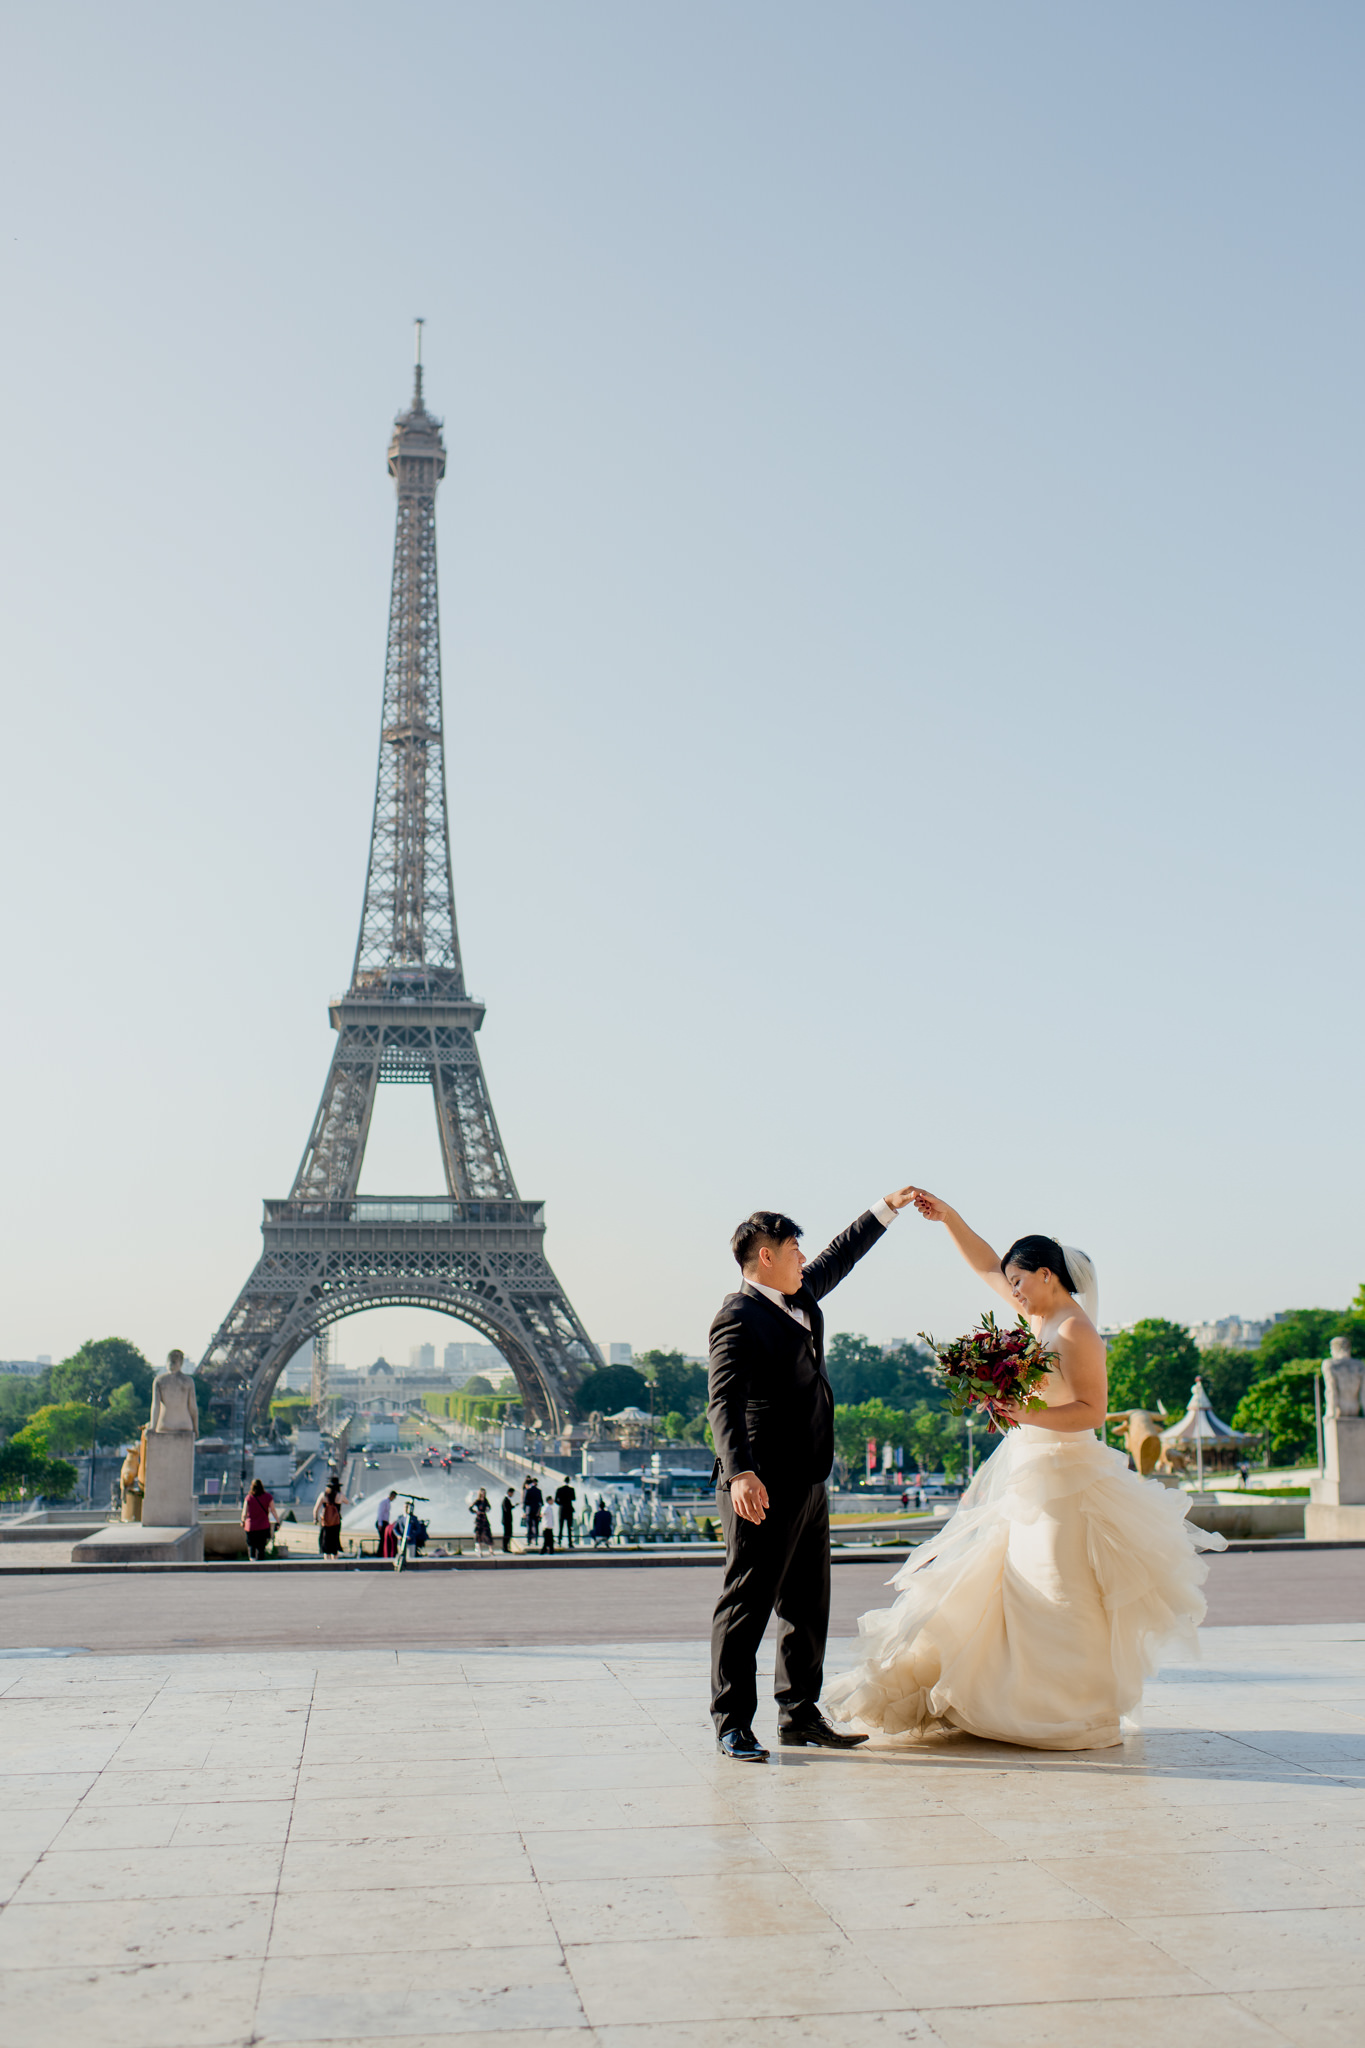 Bride and groom dance with the Eiffel Tower in the background.